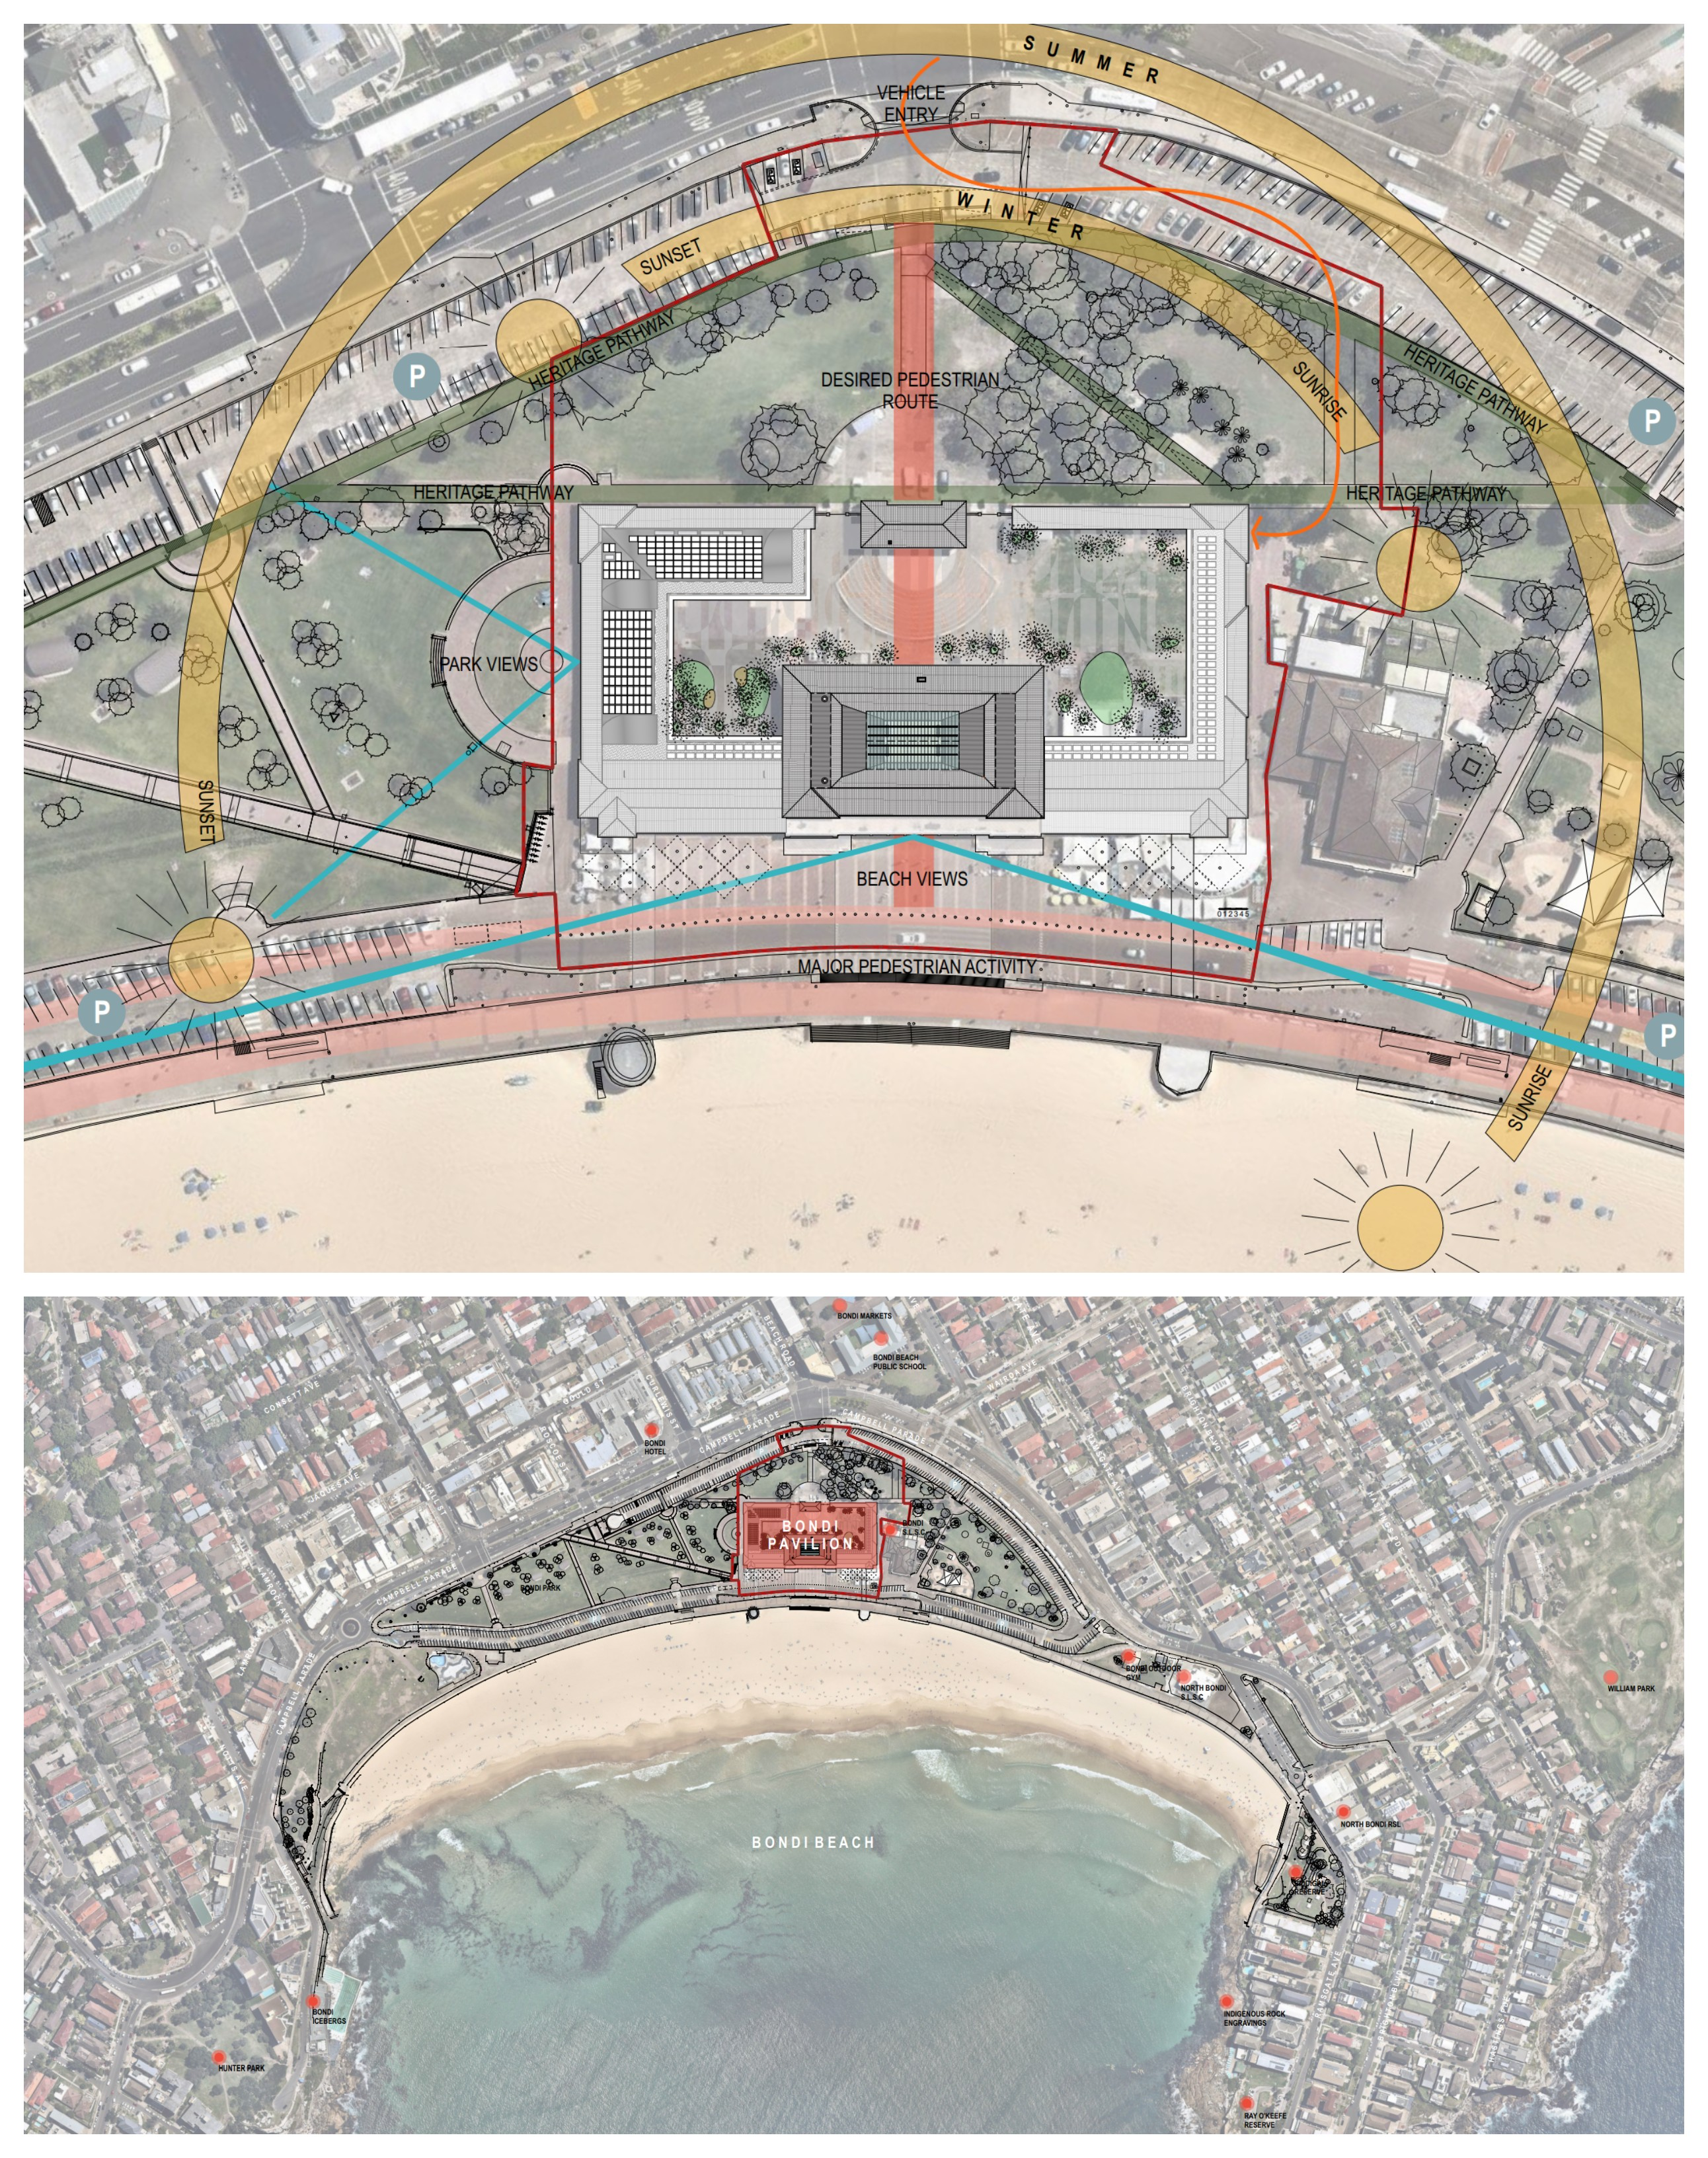 The Pavilion restoration is part of the wider plans dubbed Bondi Blueprint, set to upgrade the area.